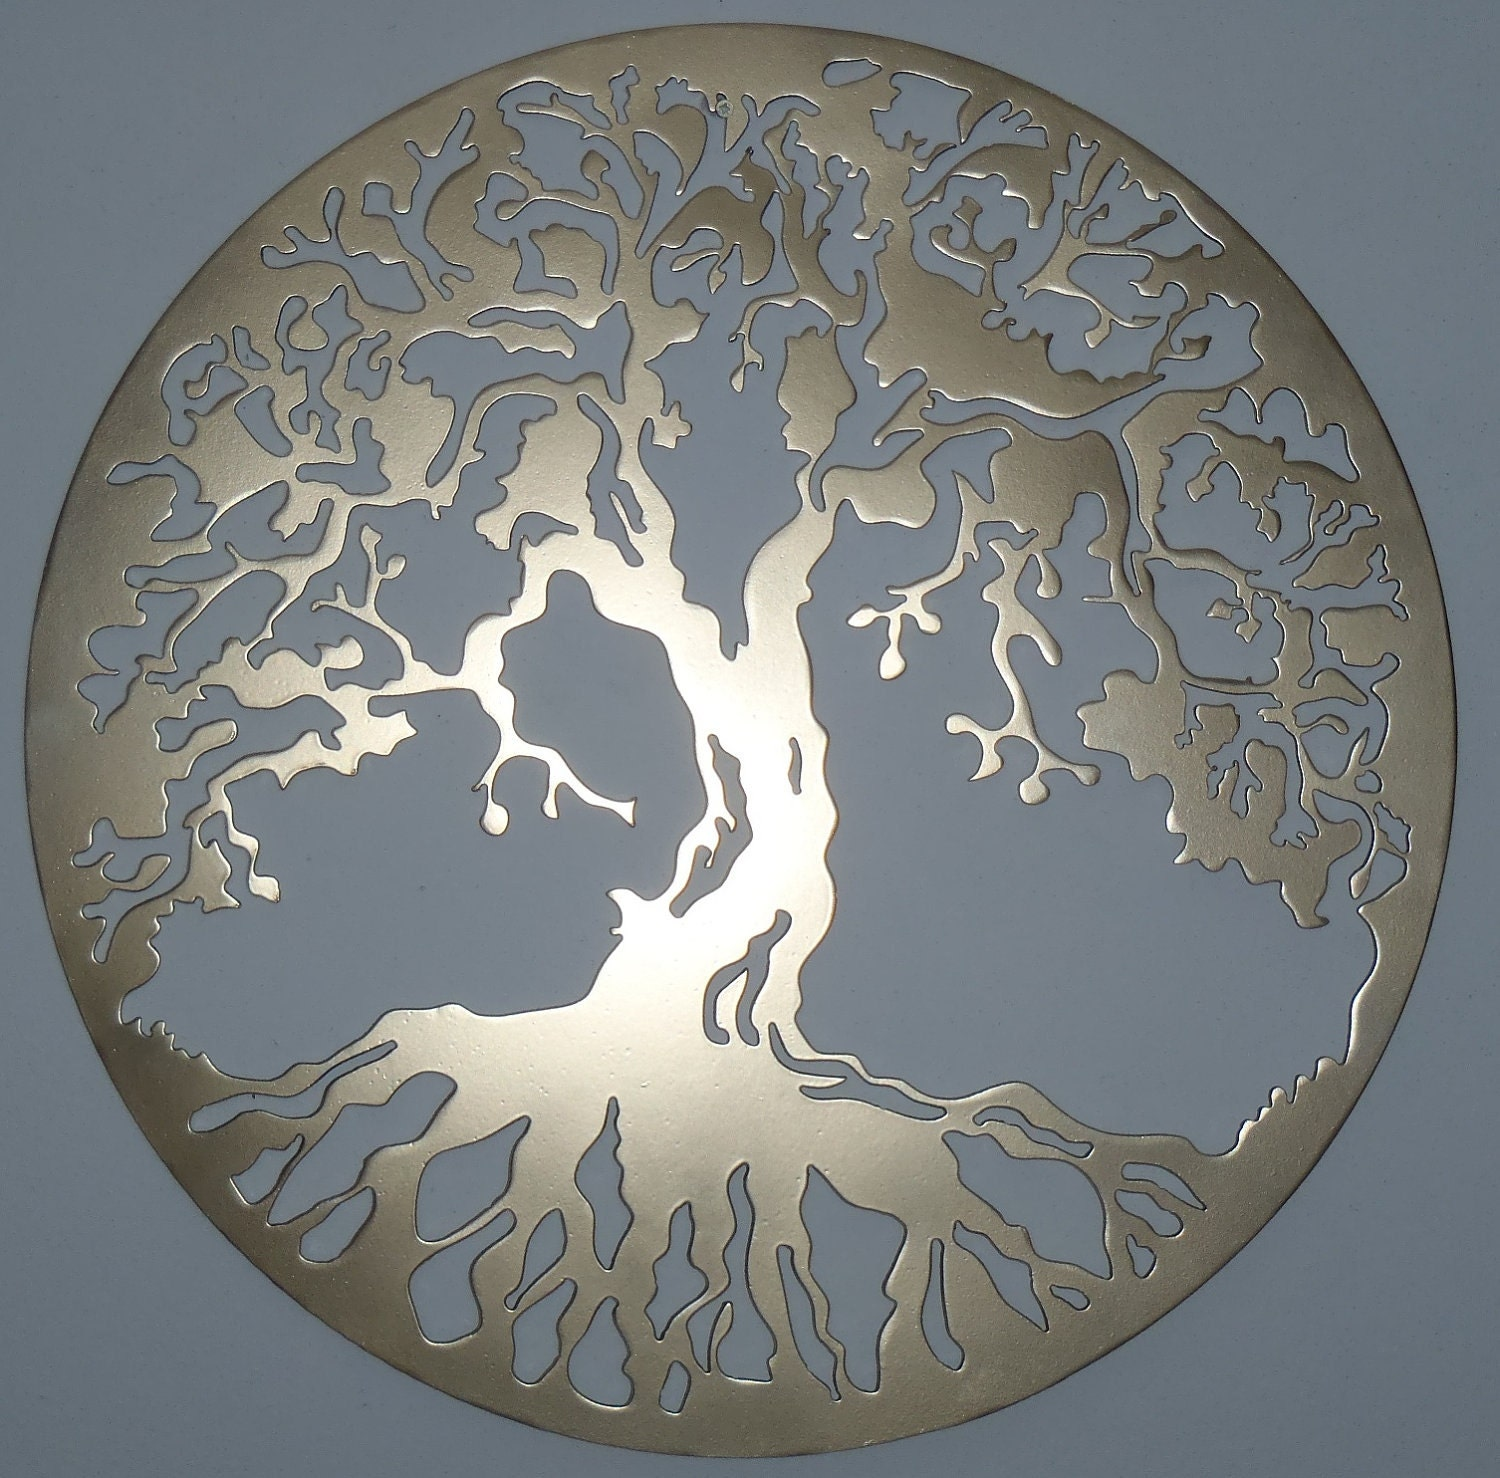 Tree of life large wall decor metal art golden look by tibi291 - Decoration metal murale ...